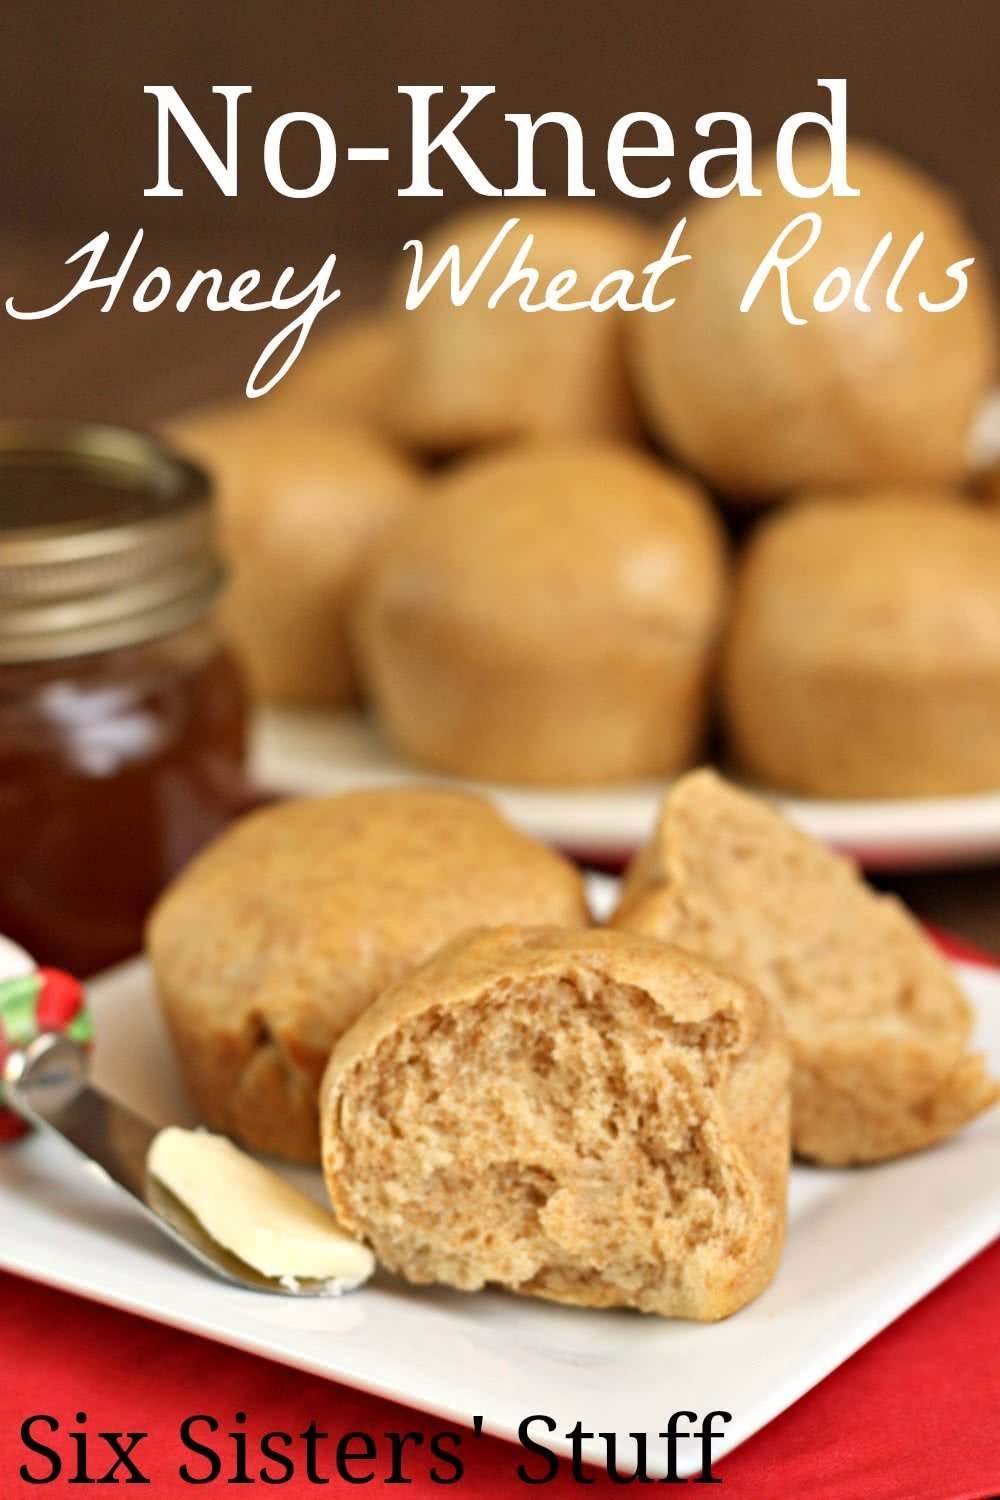 No-Knead Honey Wheat Rolls Recipe